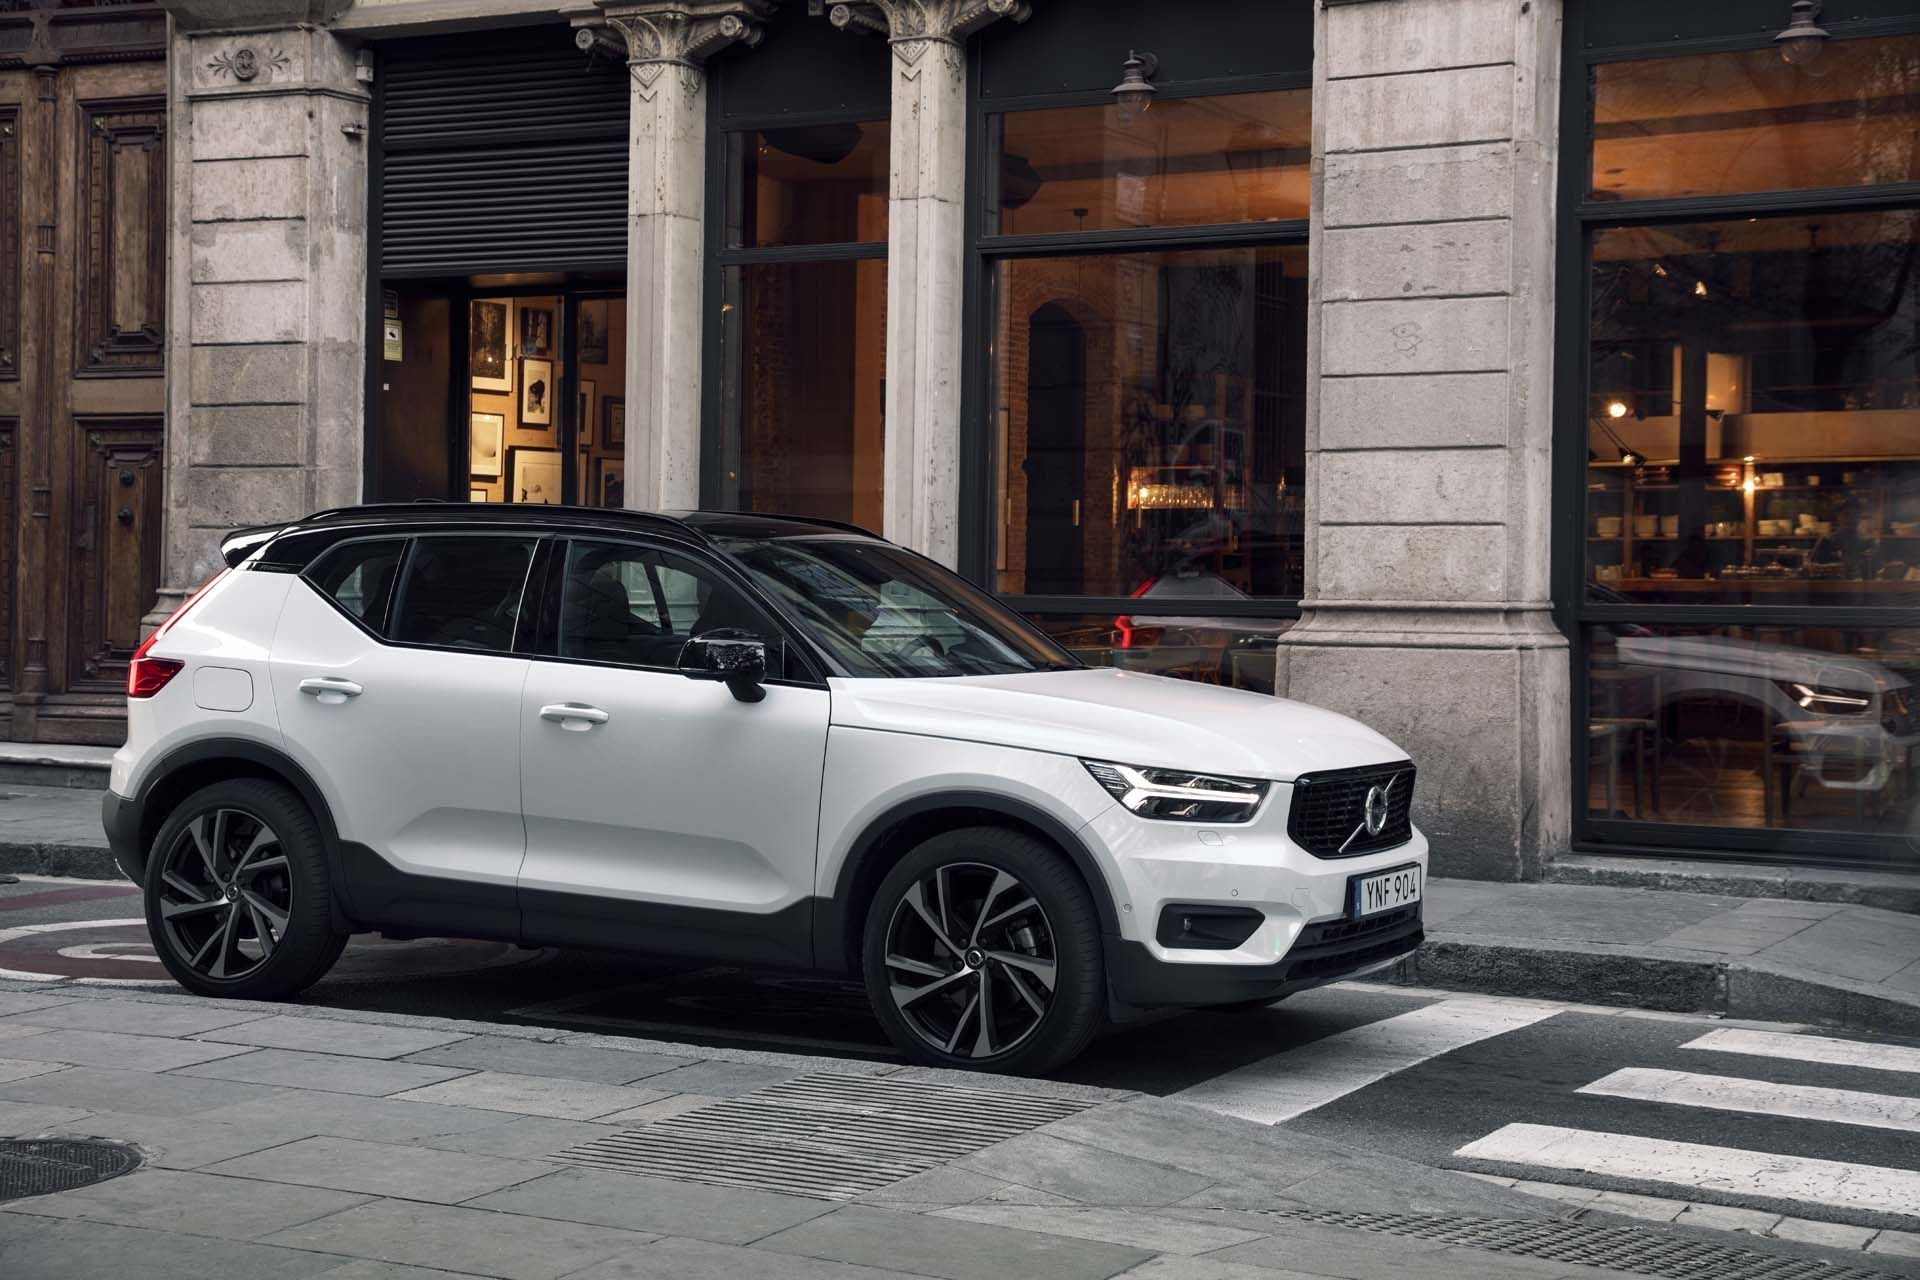 The Volvo News 2019 Release Date Best Volvo News 2019 Photos Check More At Http Wecars2019 Club Best Volvo News 2019 Photos Volvo Cars Volvo Suv Volvo